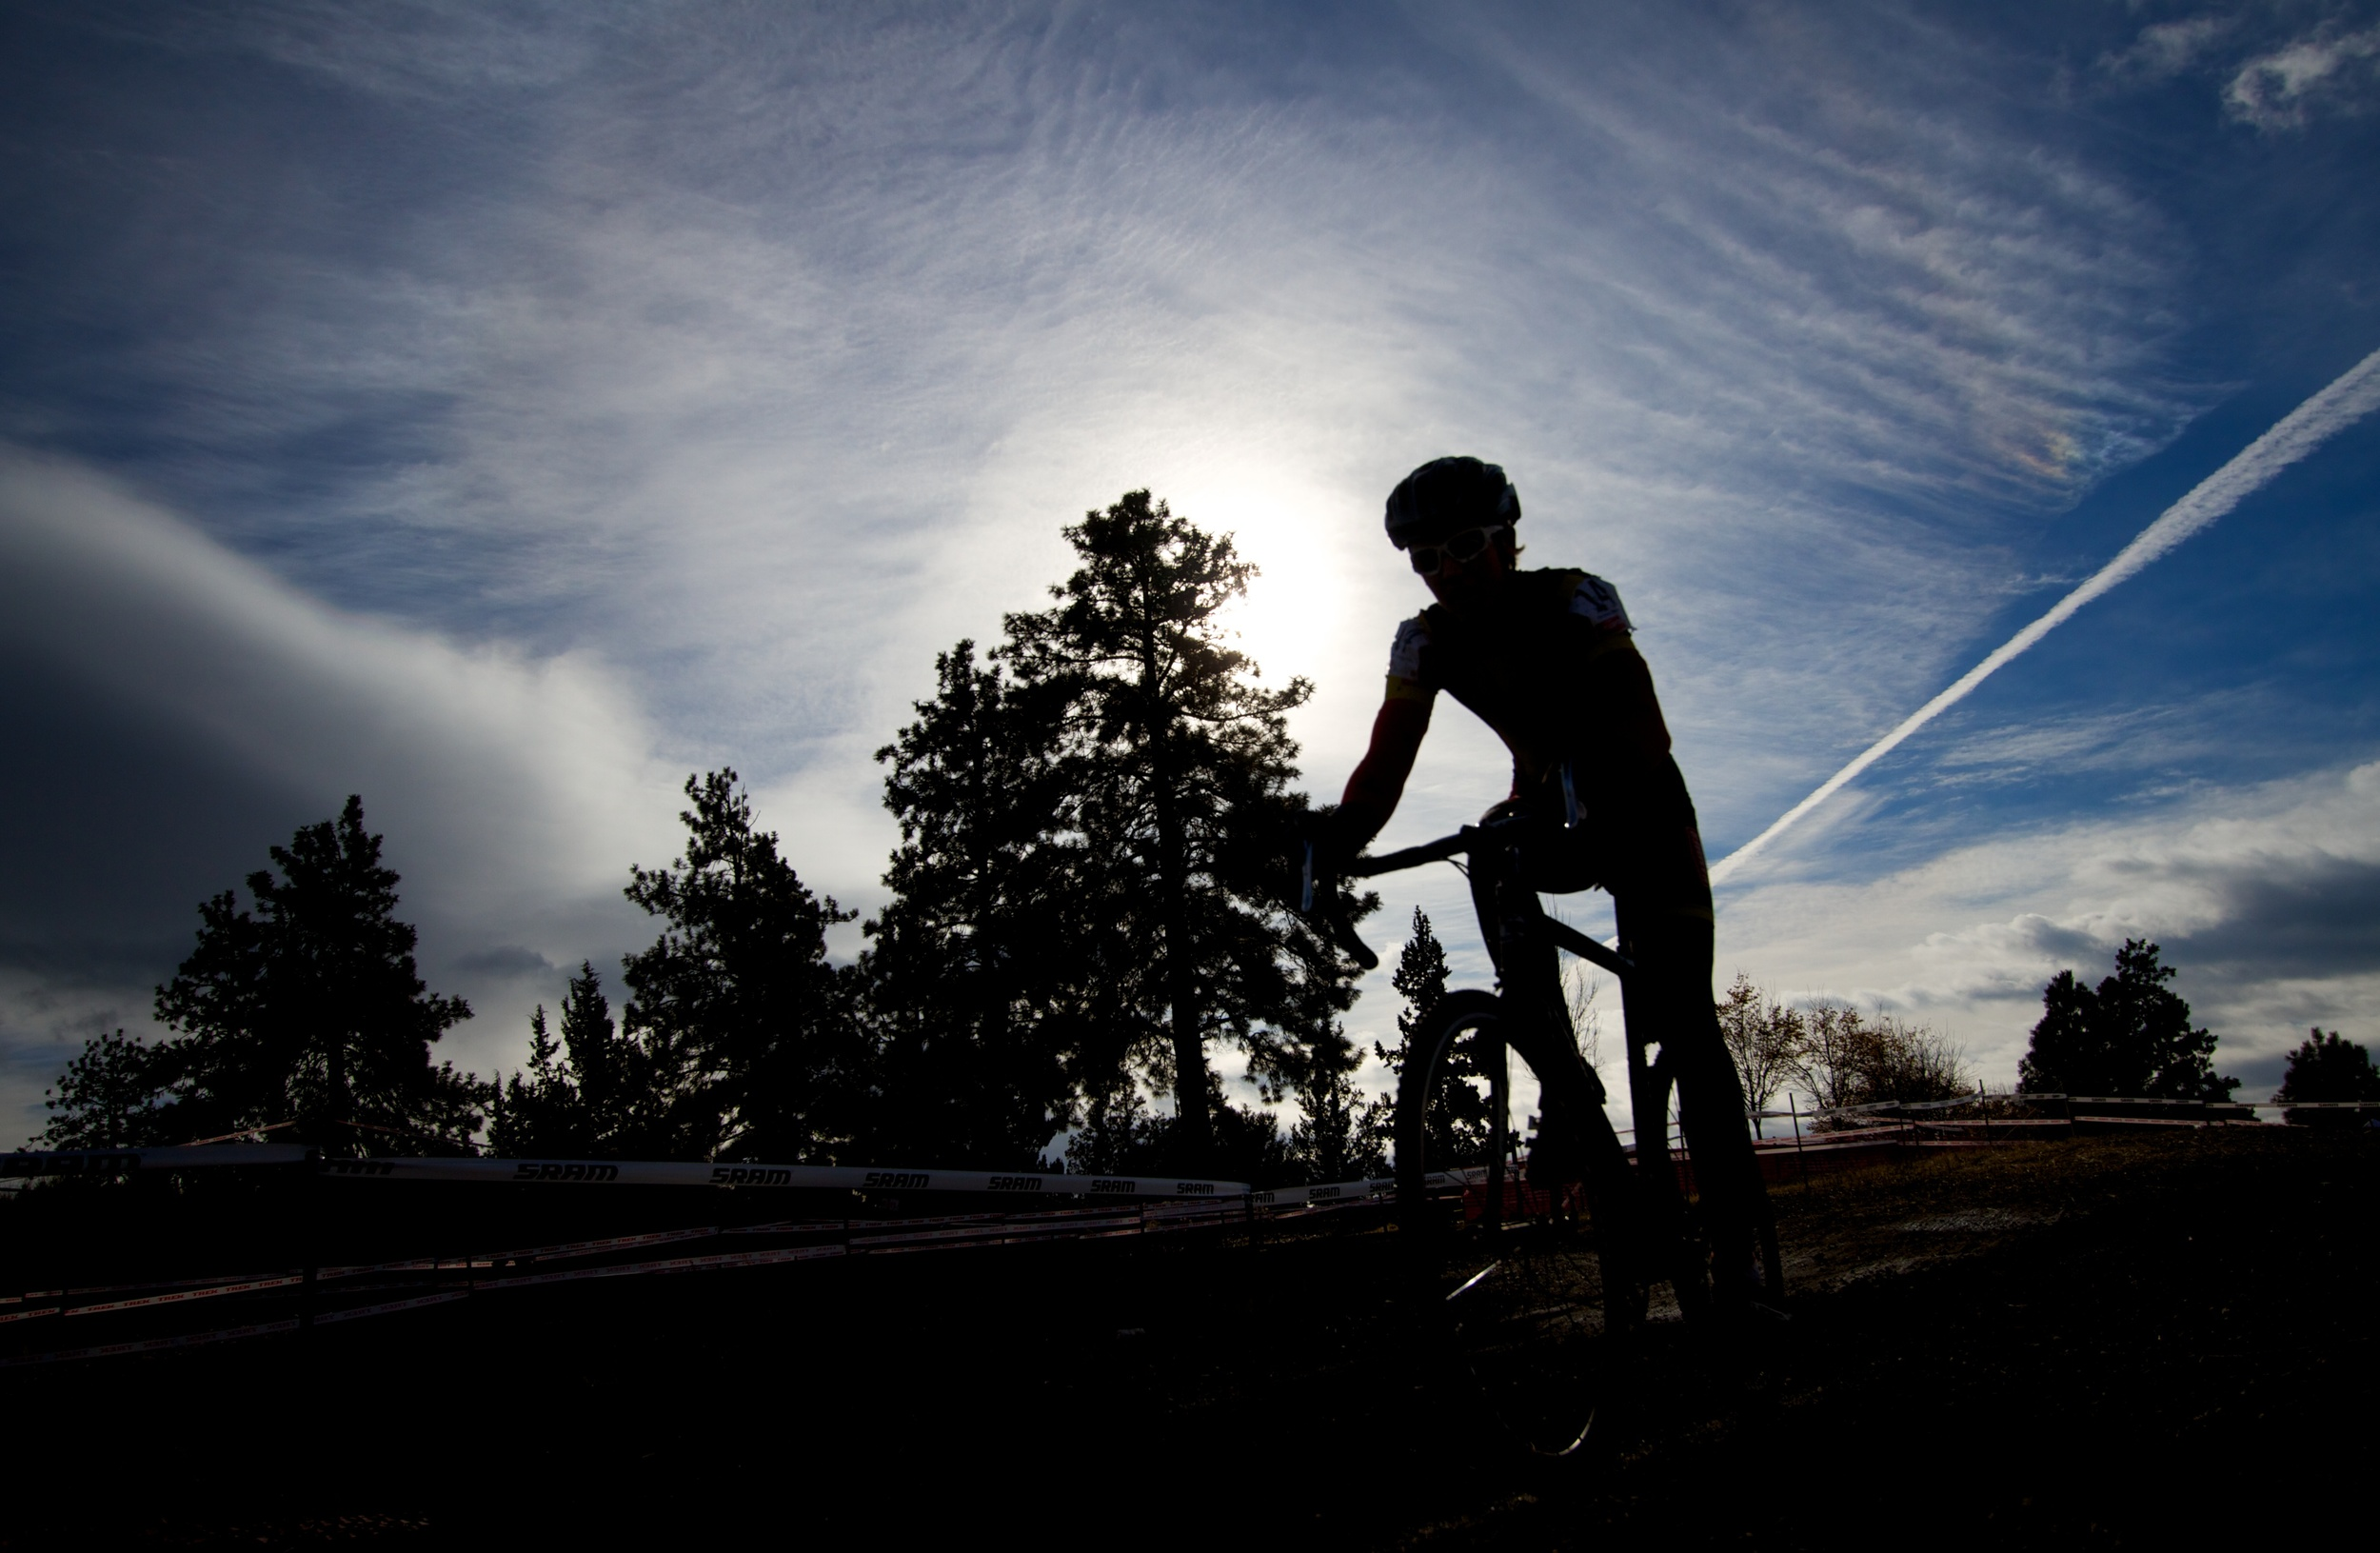 The silhouette of a cyclocross racer as he powers on through the race.  Canon EOS 7D EF-S 10-22mm at 17mm f/4 1/500 ISO 100 −1ev